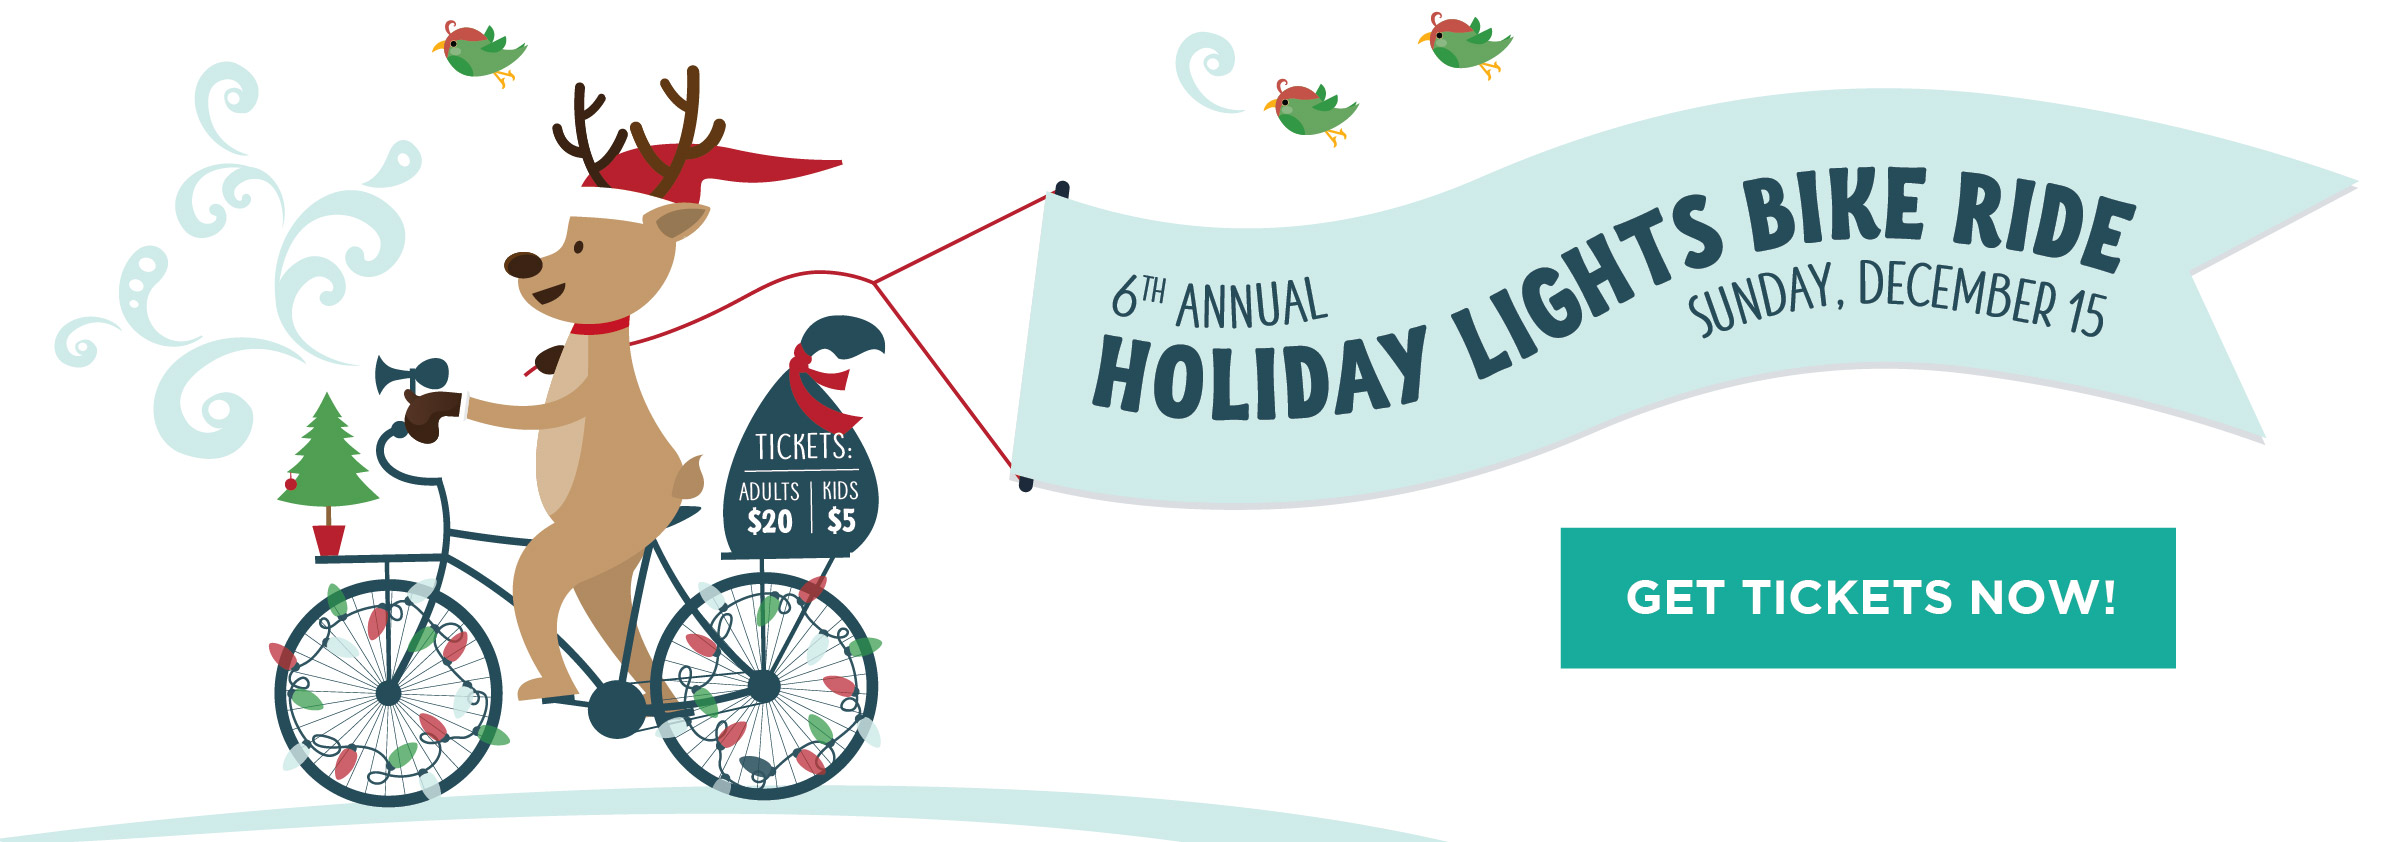 6th Annual Holiday lights Ride. Sunday December 15th. Get your tickets.